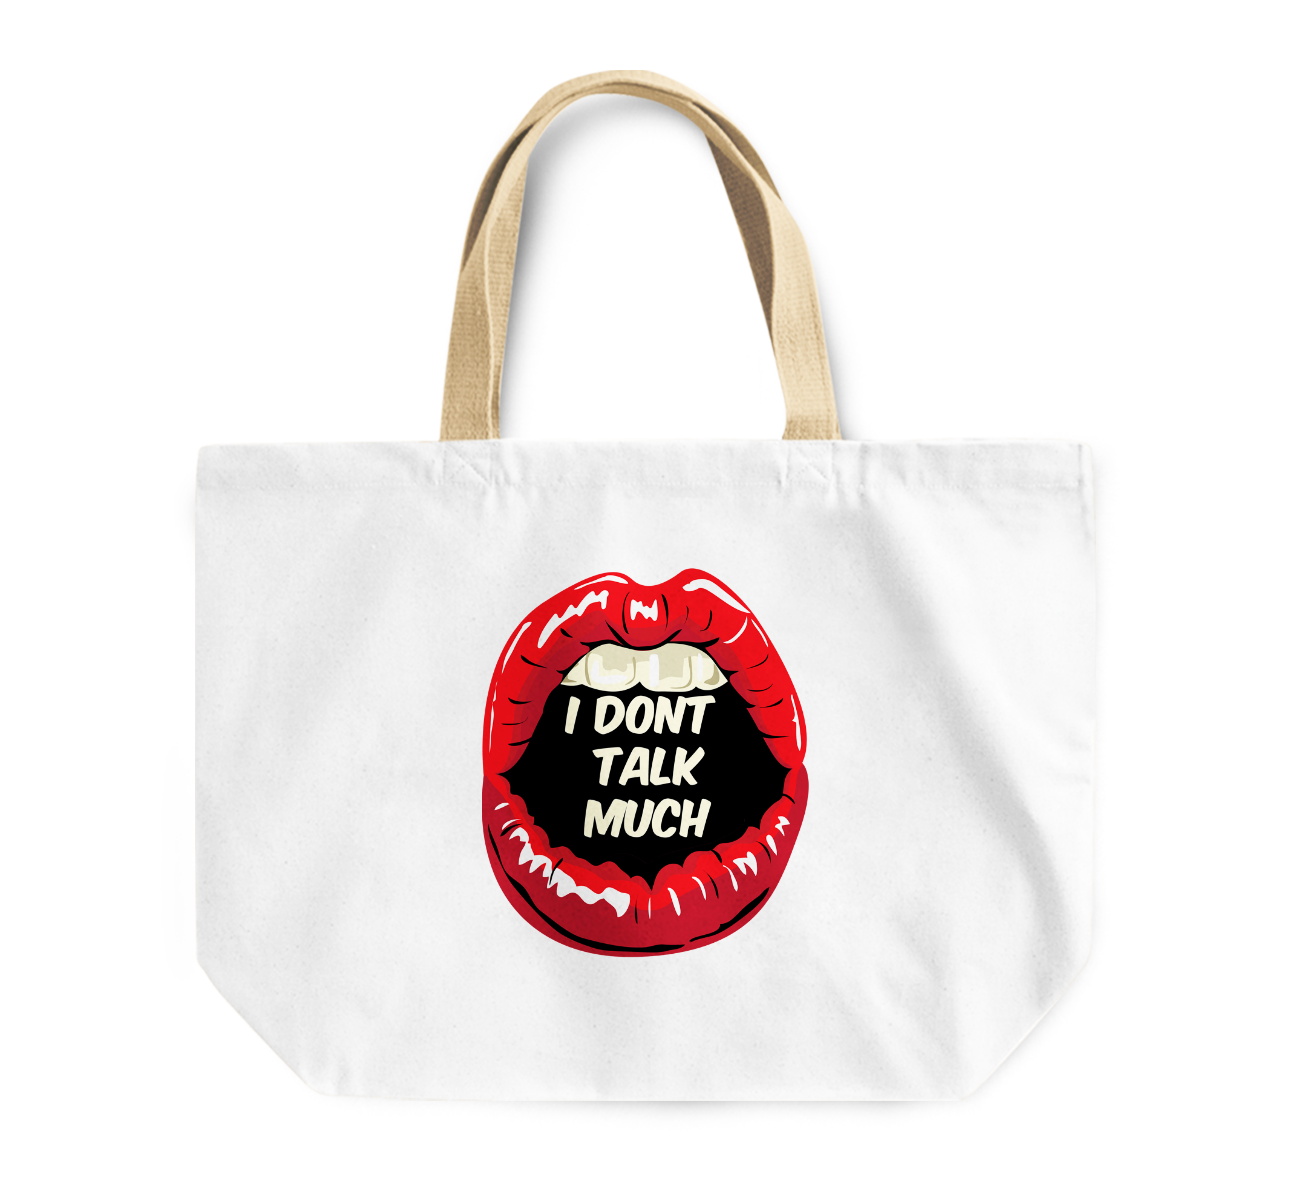 Tote Bag i Dont Talk Much Red Lipstick Women Reusable Shopping Bag By Loud Universe